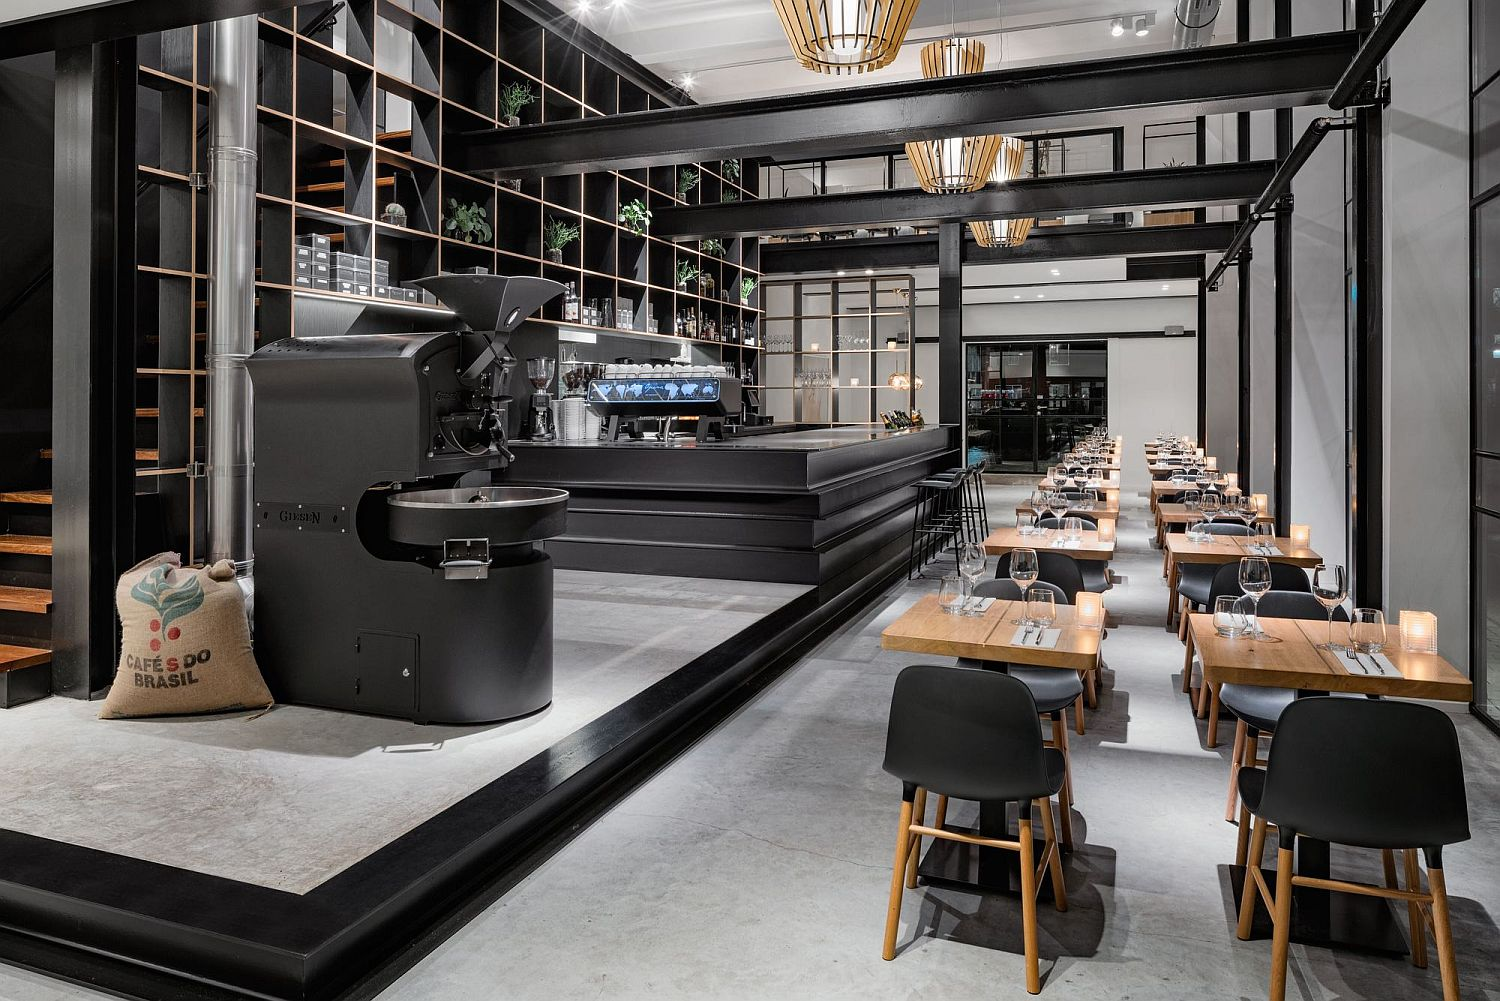 Stunning black and white cafe with a dash of woodsy charm